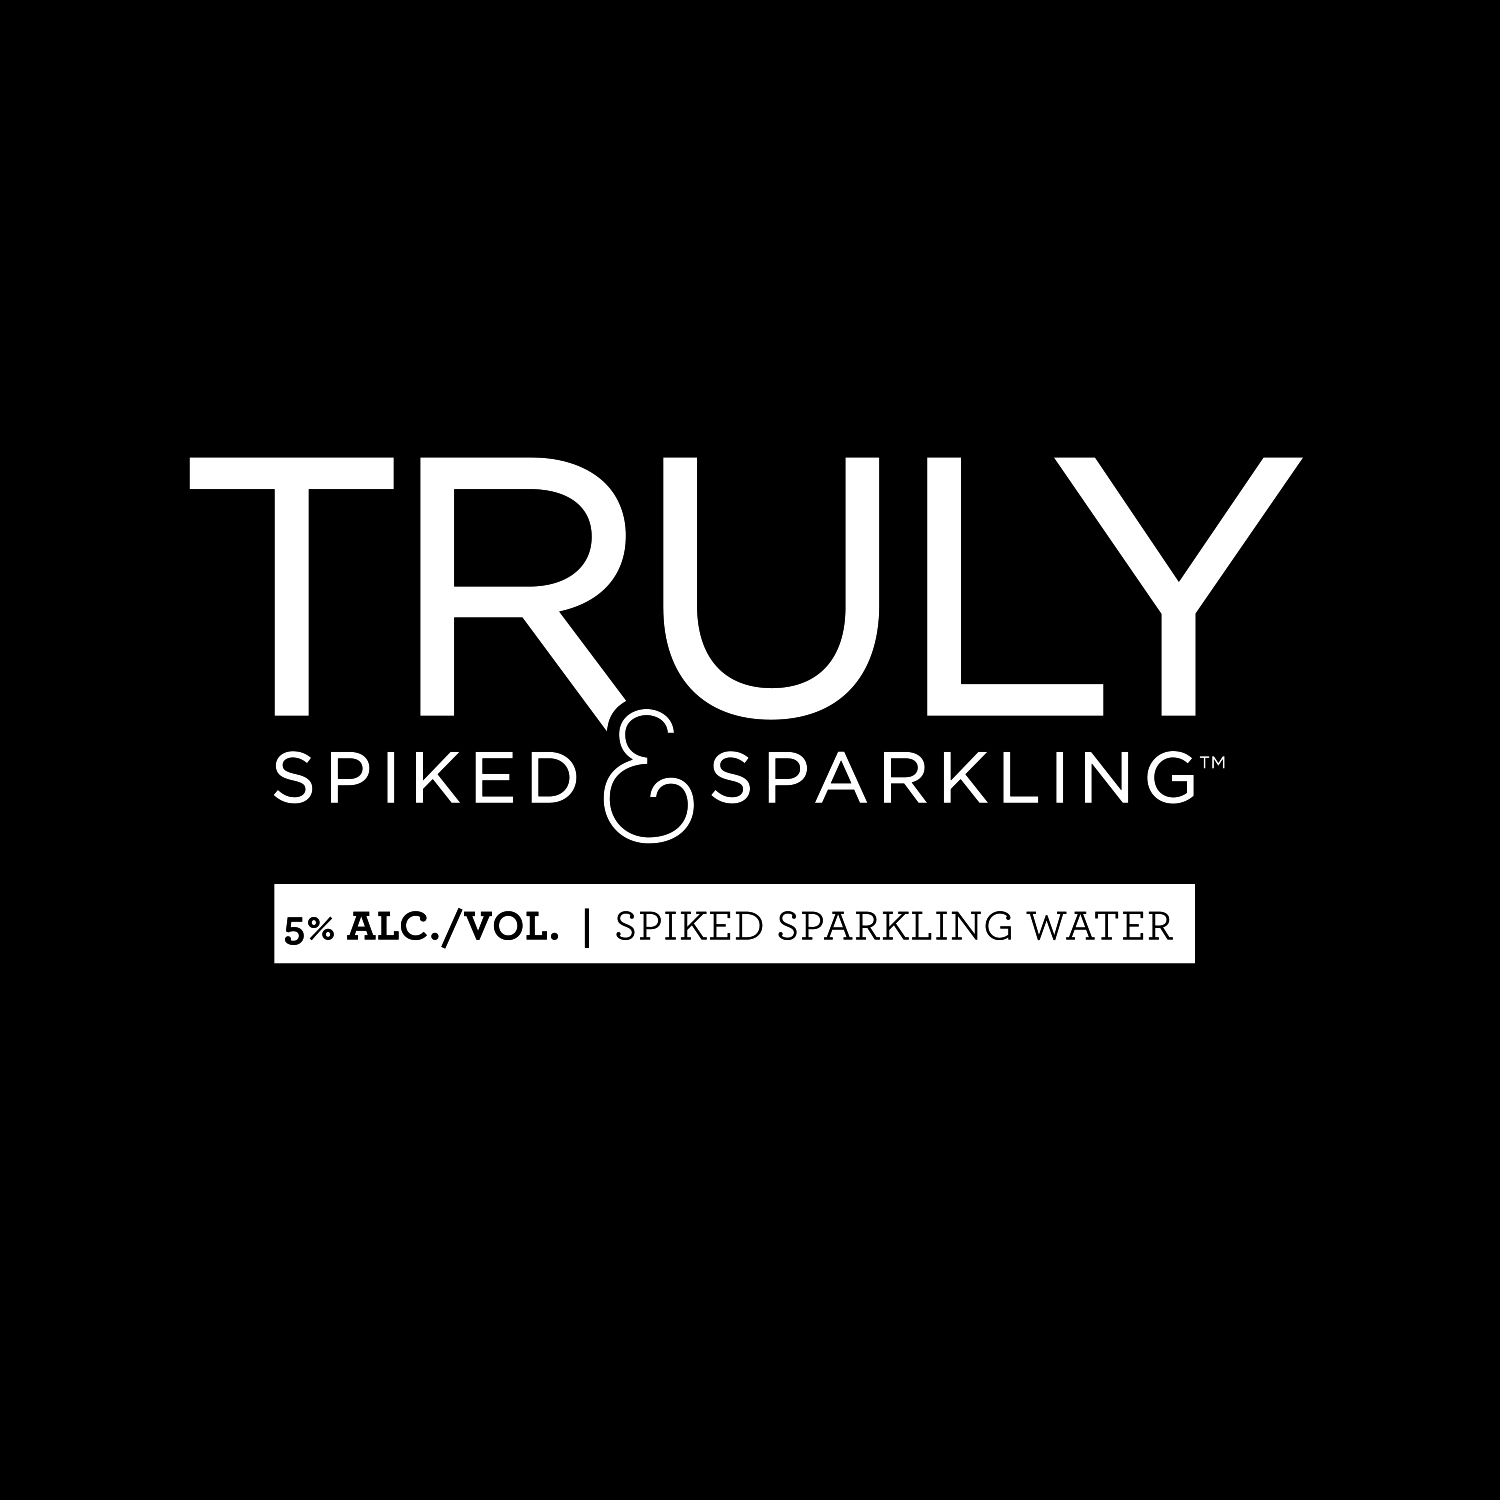 TRULY SPIKED + SPARKLING